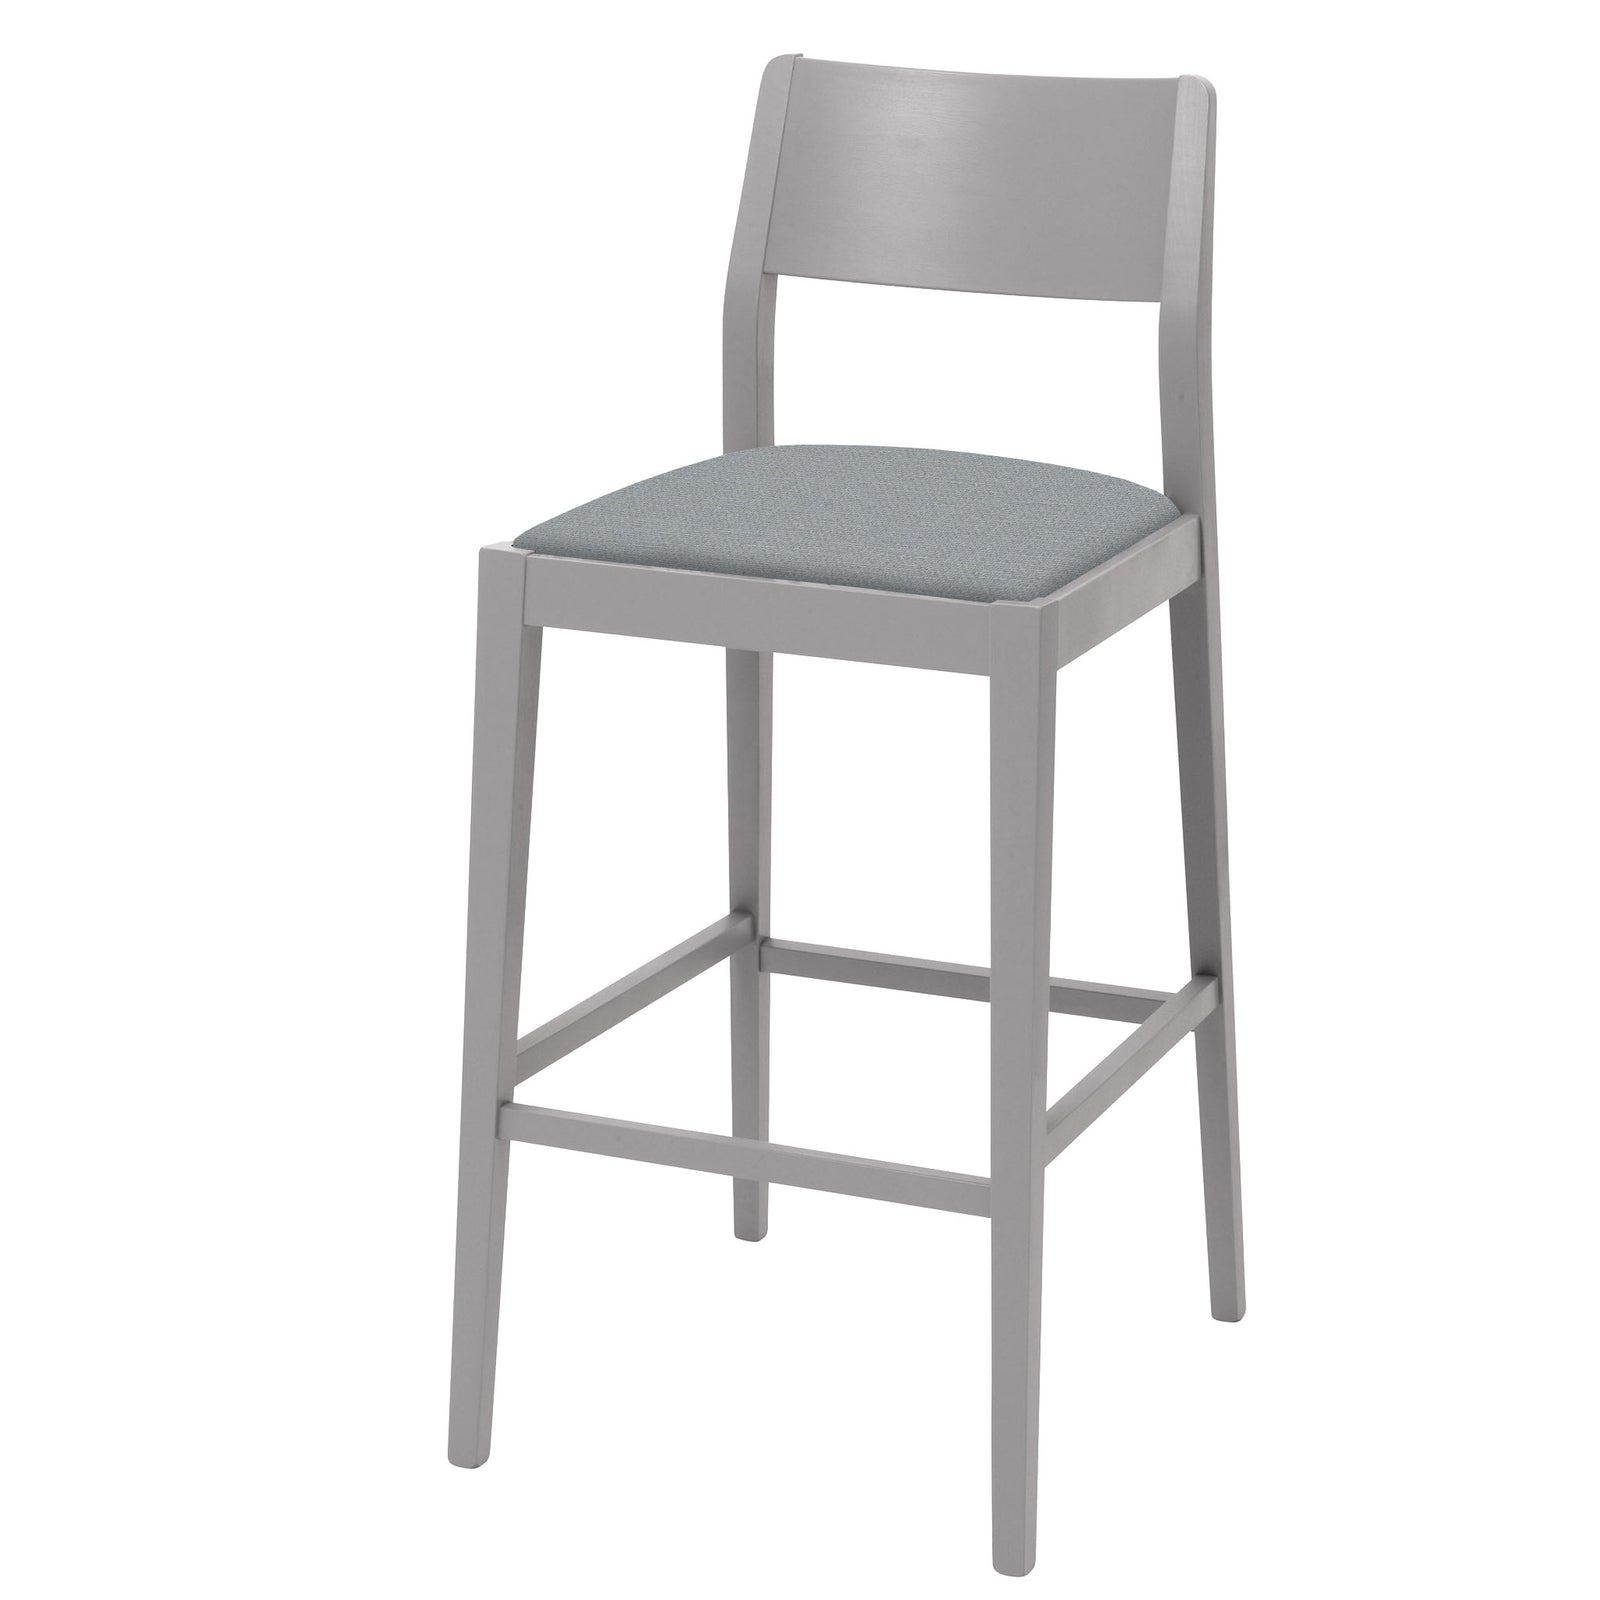 James Luxury Bar Stool made-to-order in your chosen colourway.